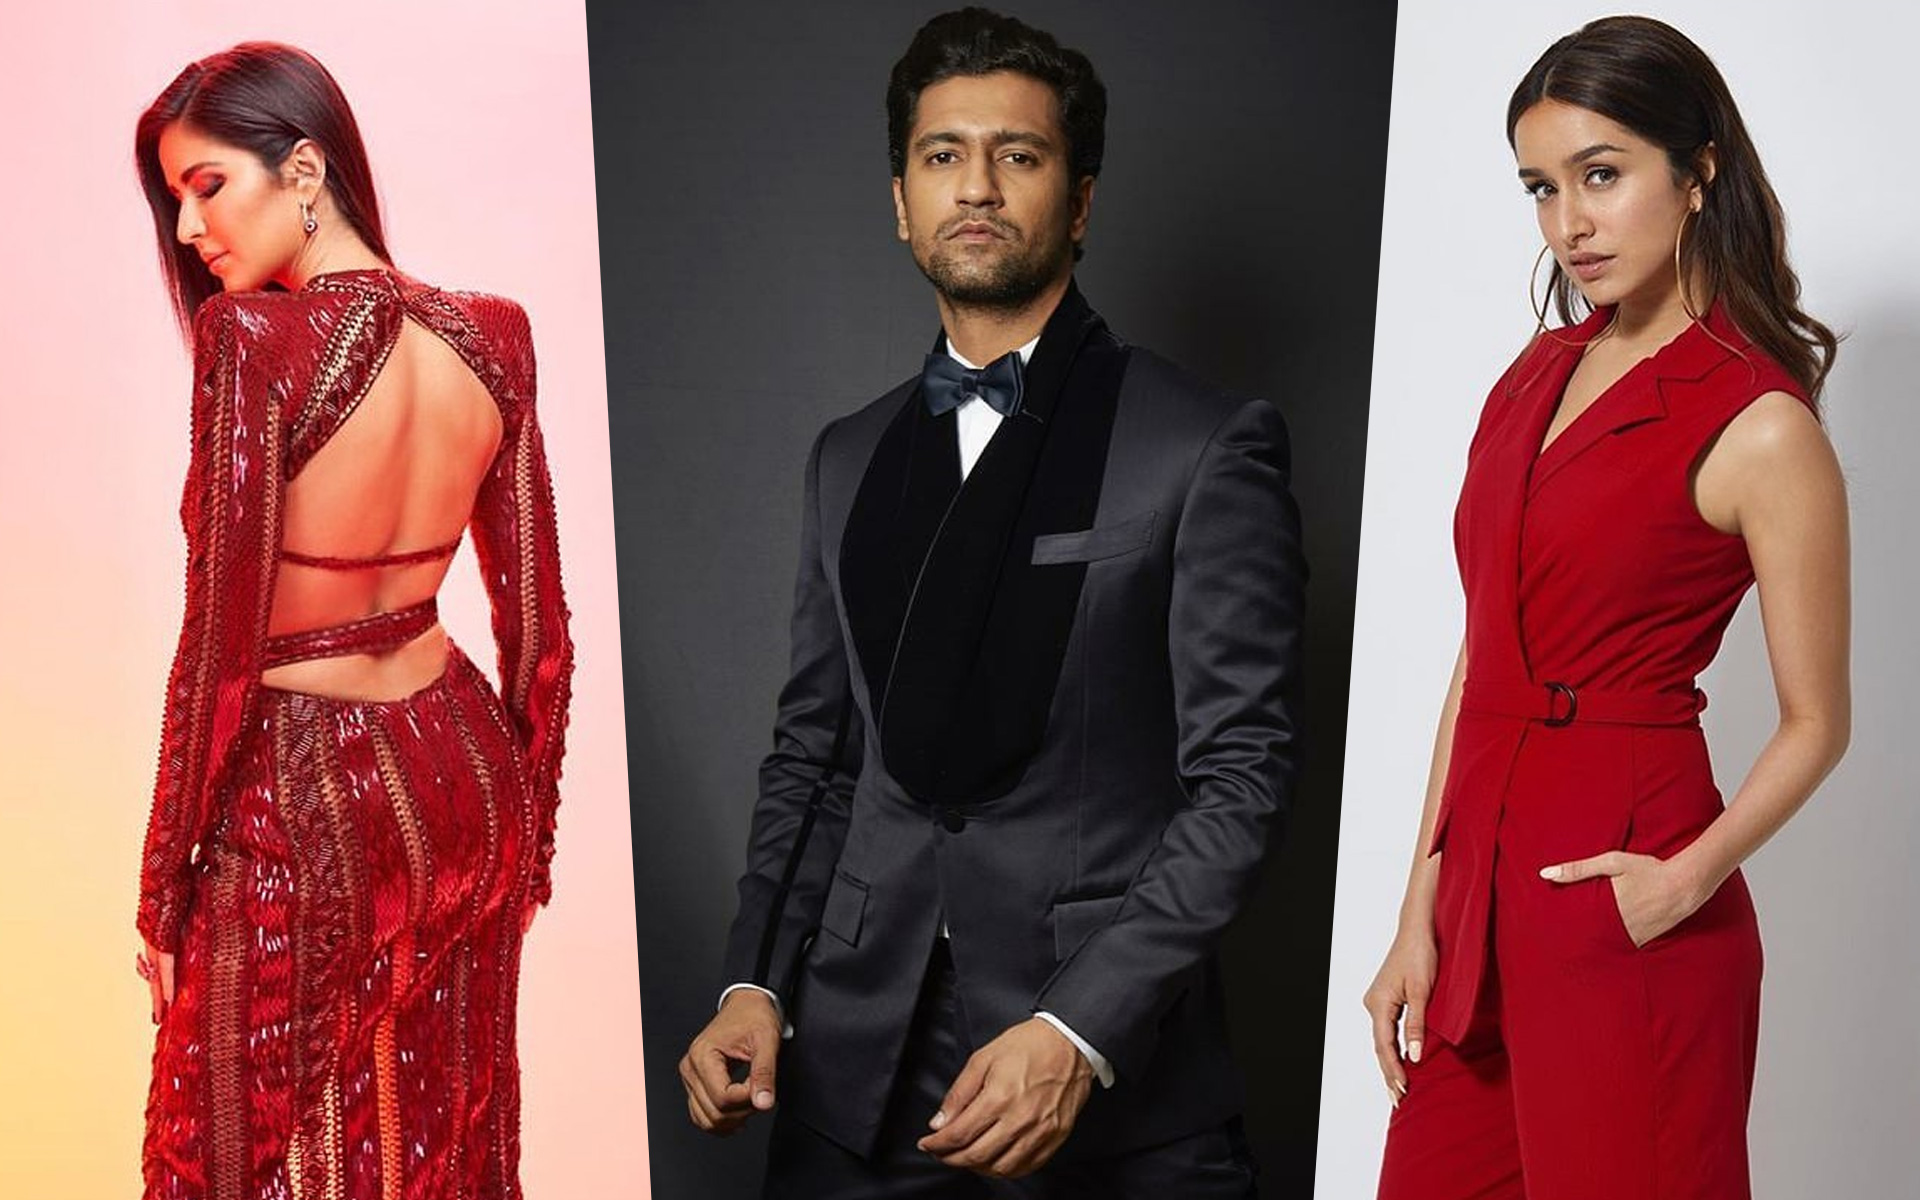 IIFA Rocks 2019: From Katrina Kaif To Vicky Kaushal - Best & Worst Dressed Ranked!